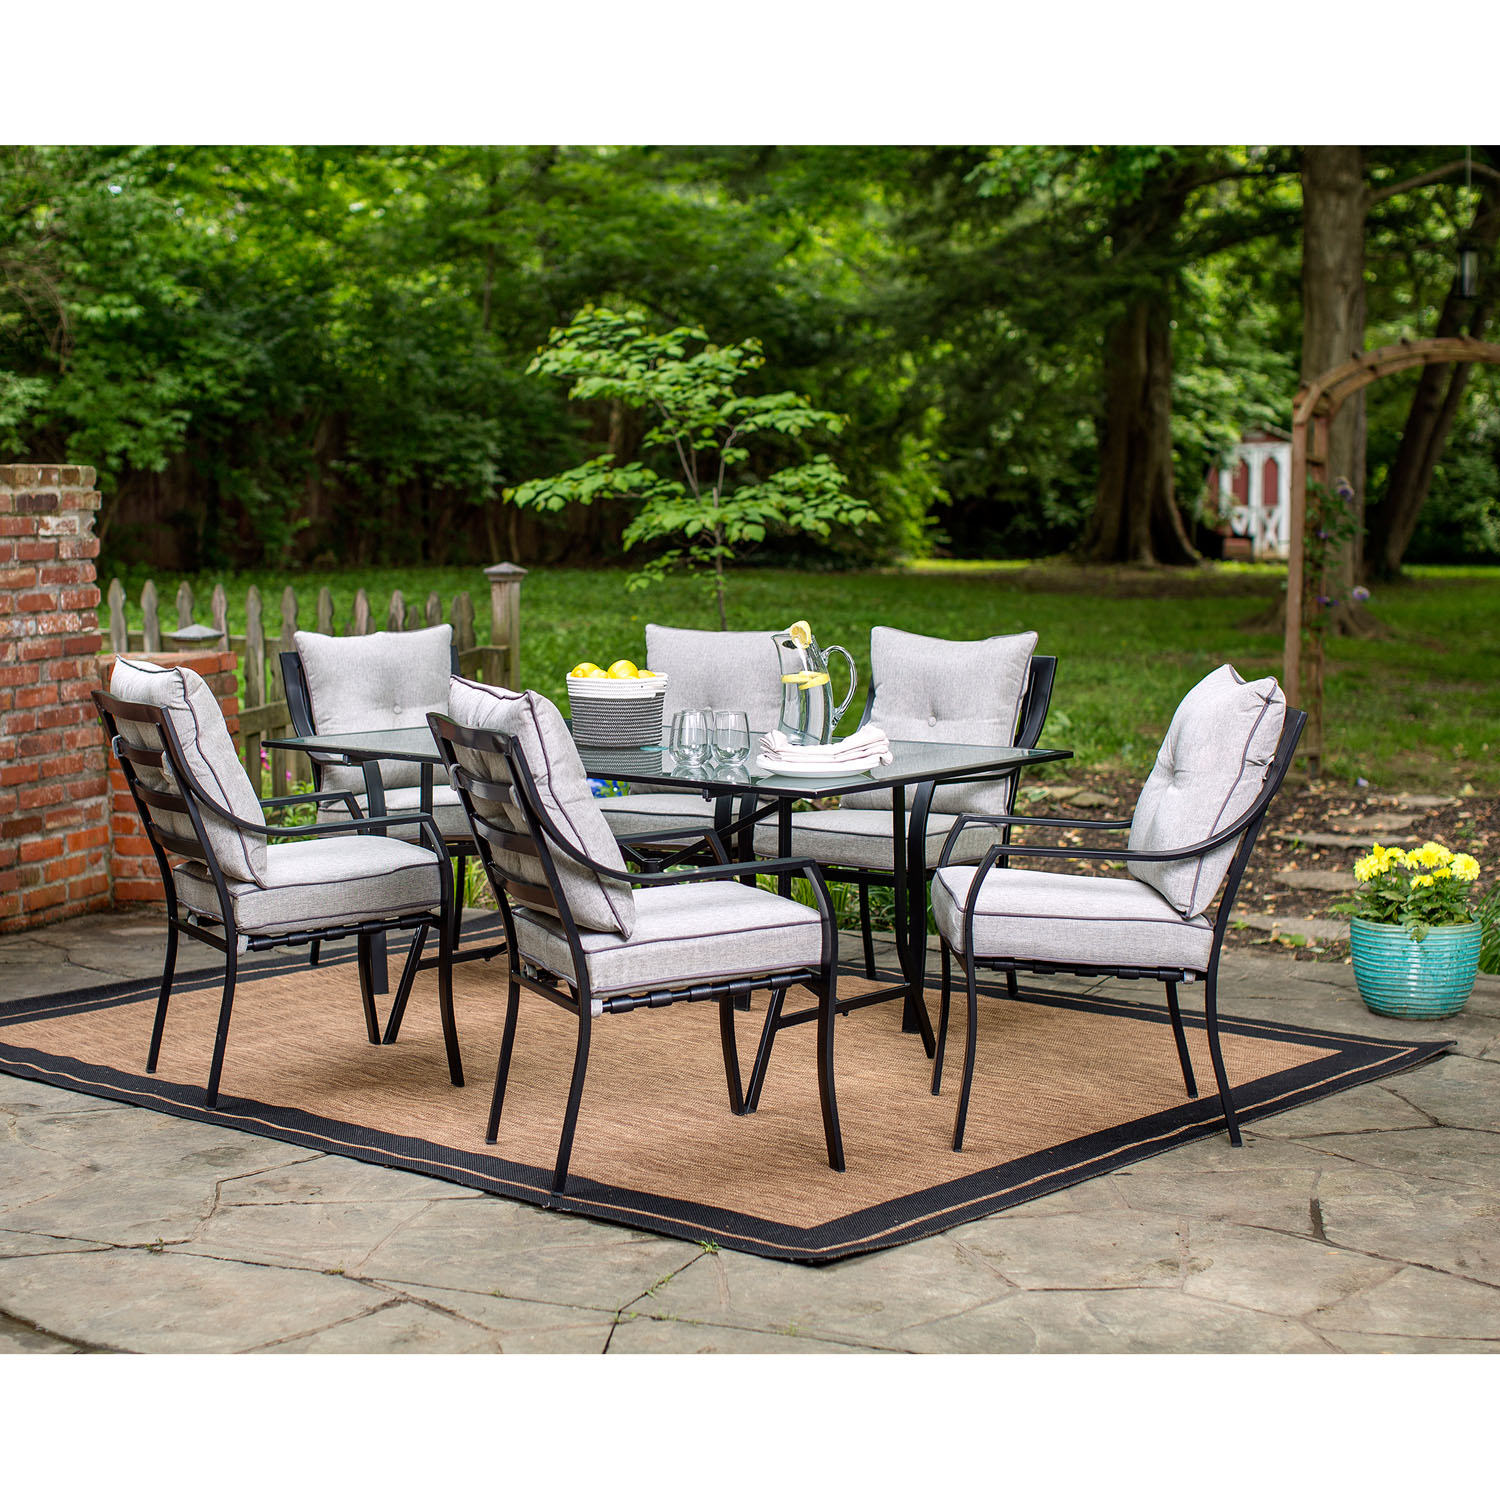 Hanover Lavallette 7-Piece Outdoor Dining Set